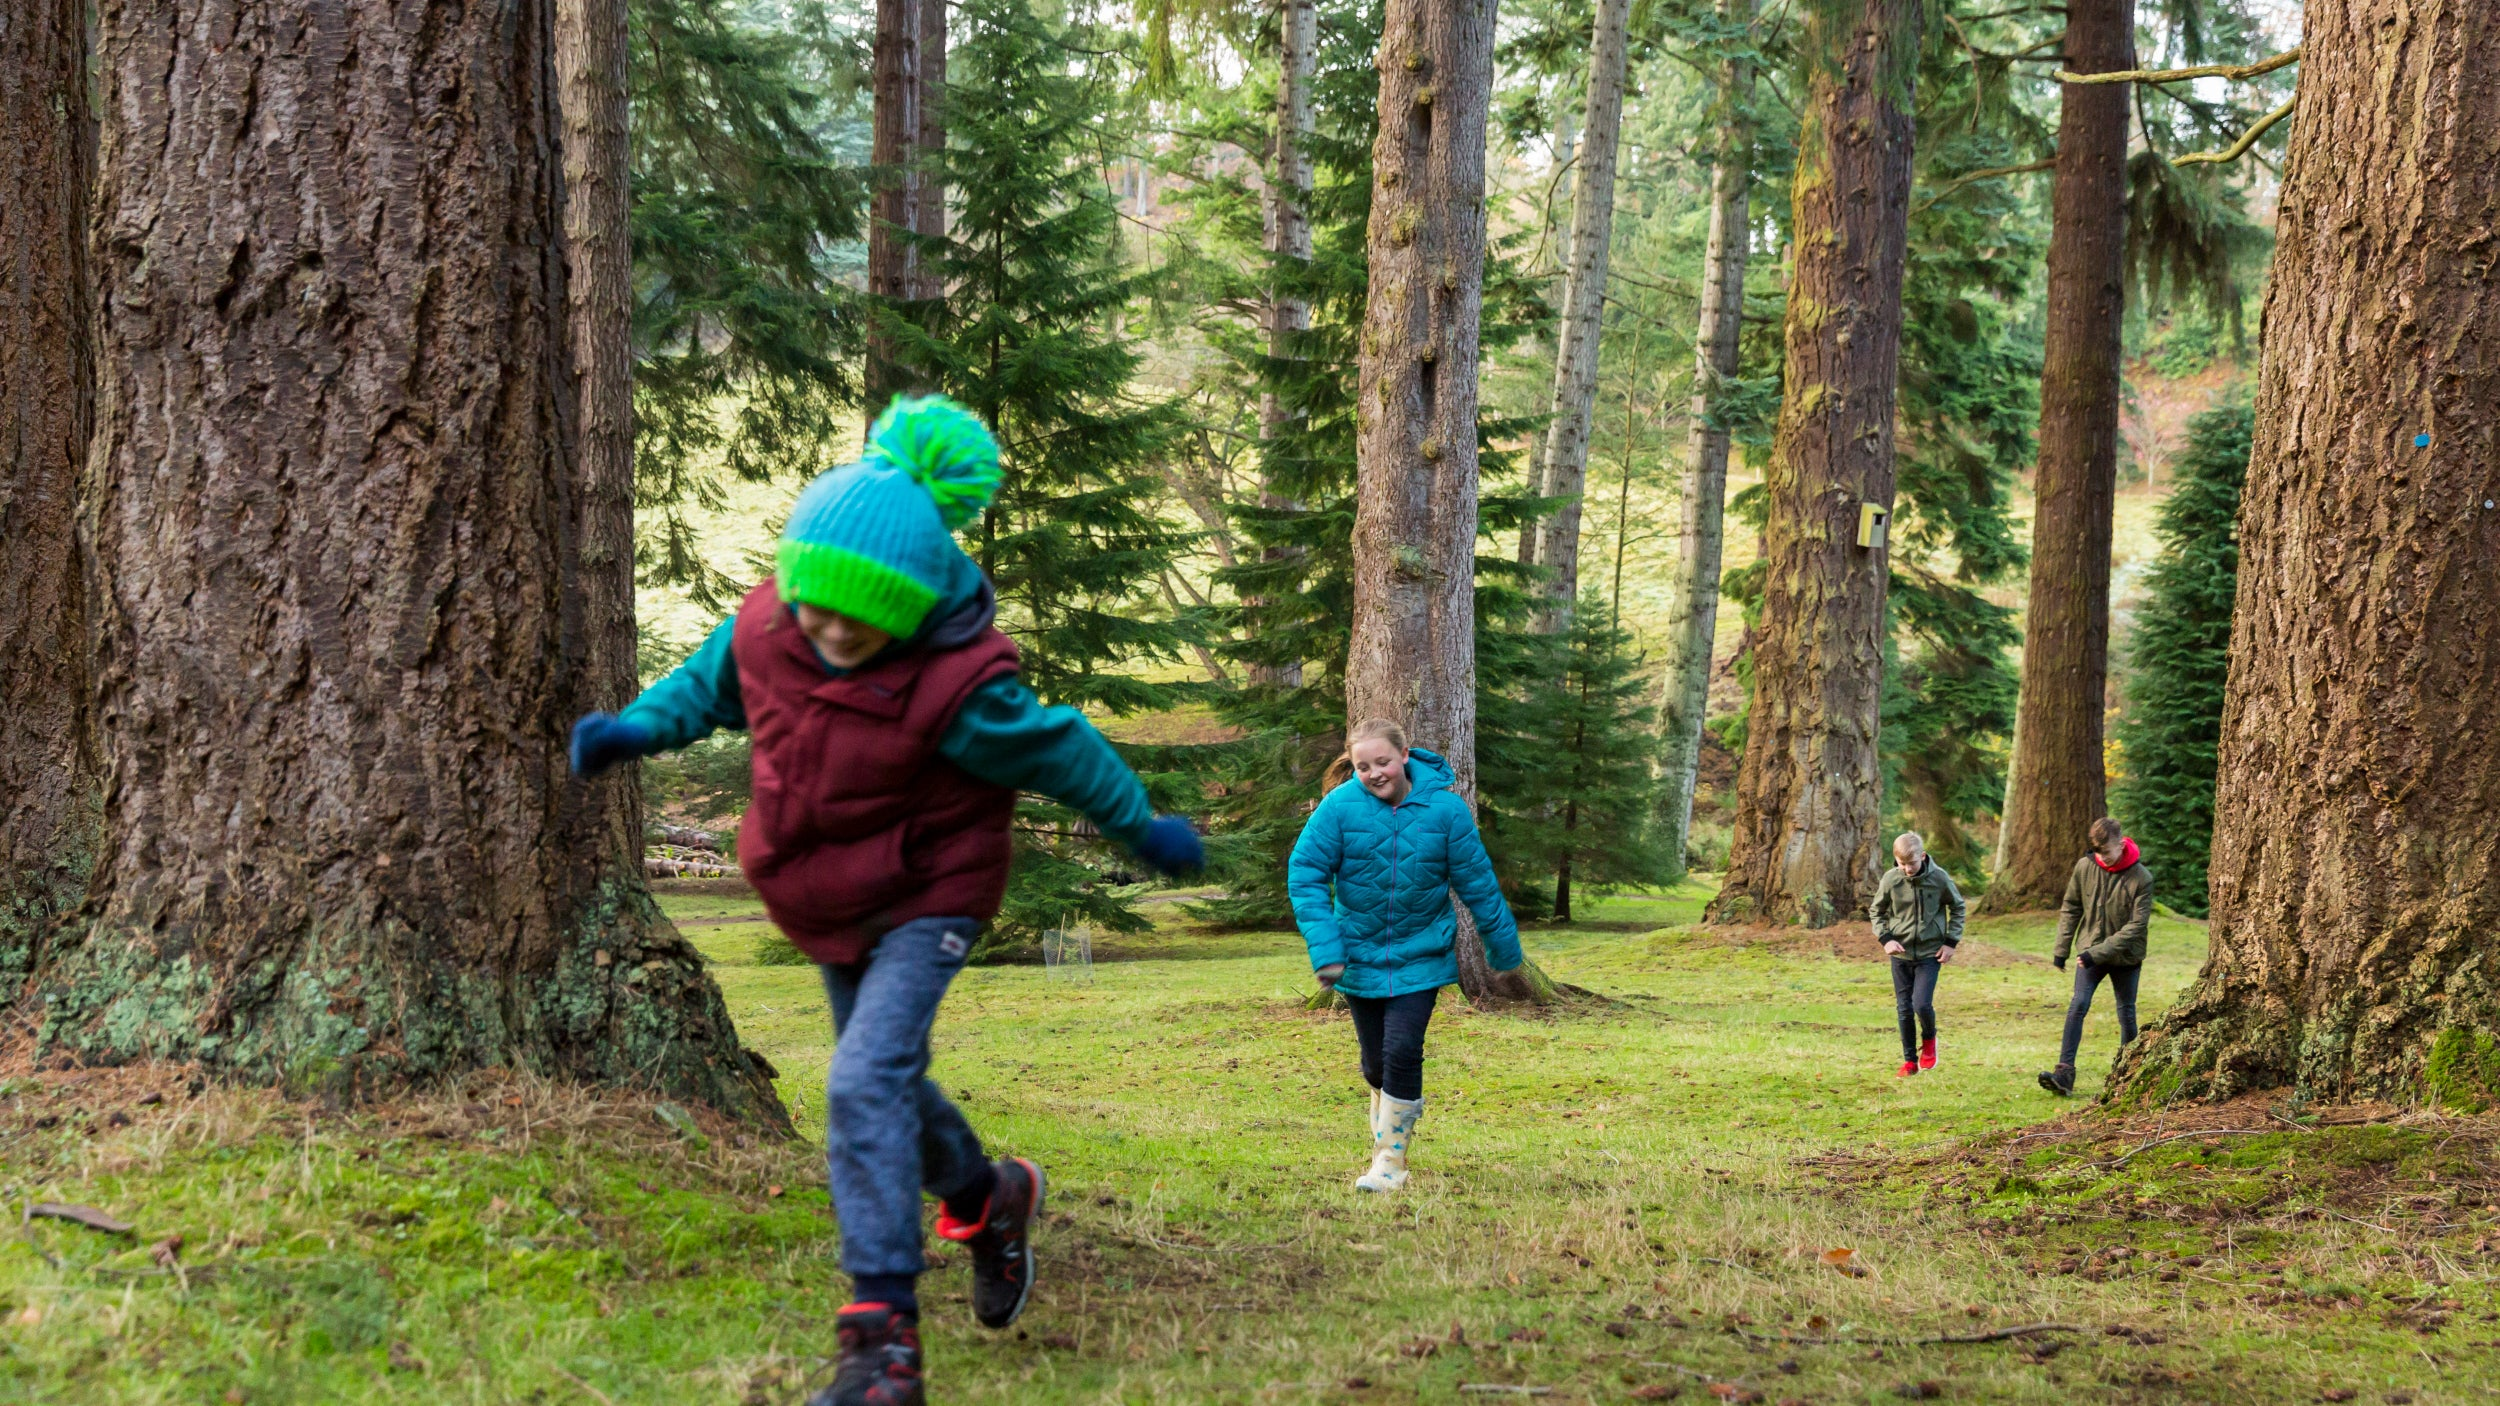 Children run through the Pinetum